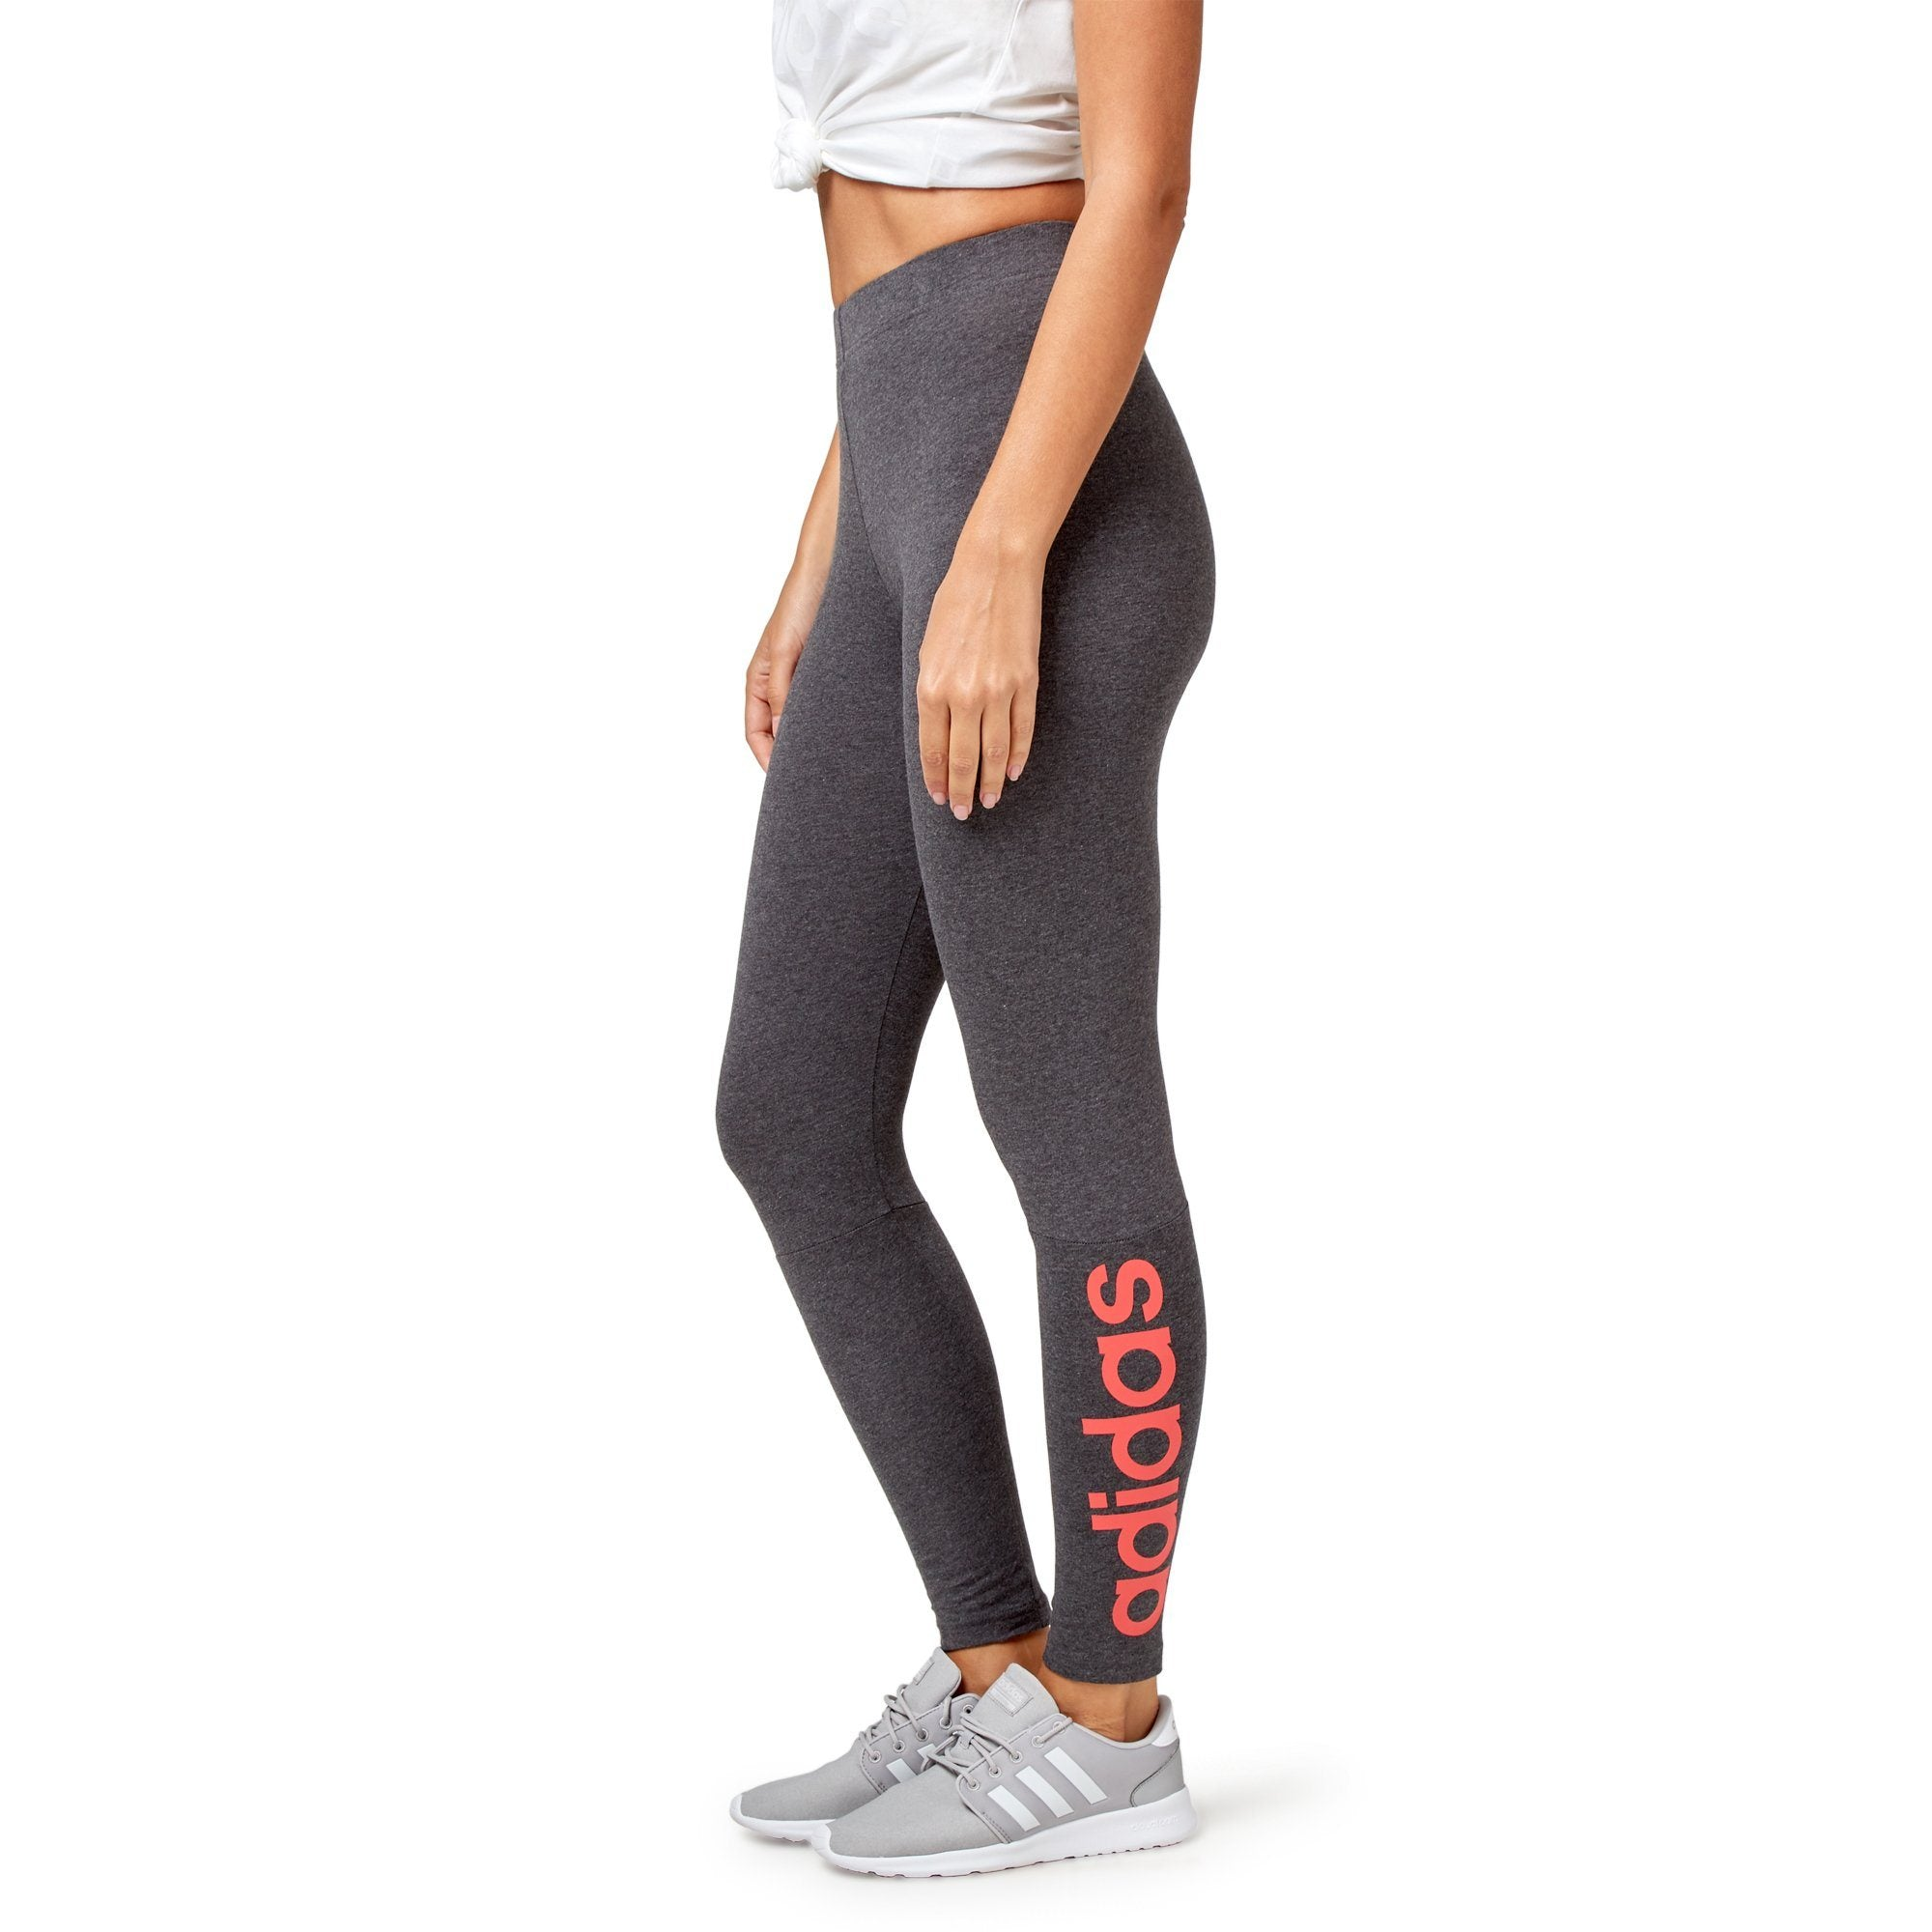 Adidas Women's Essential Linear Tight with Logo - Dark Grey Heather/Real Coral Apparel Adidas